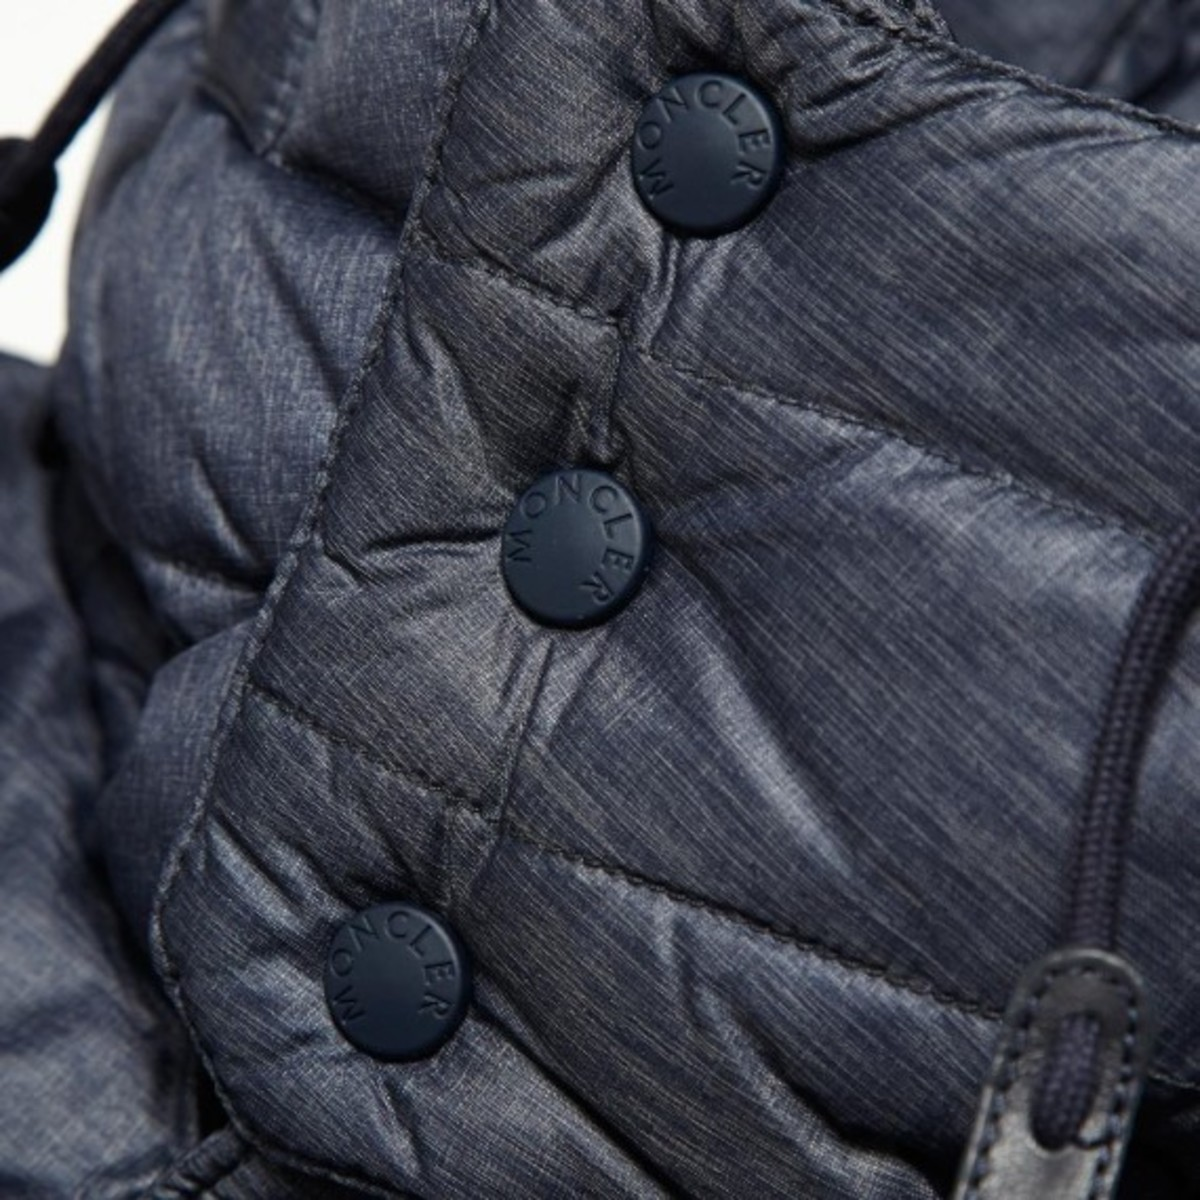 moncler-w-white-mountaineering-havoc-technical-chambray-down-parka-jacket-04